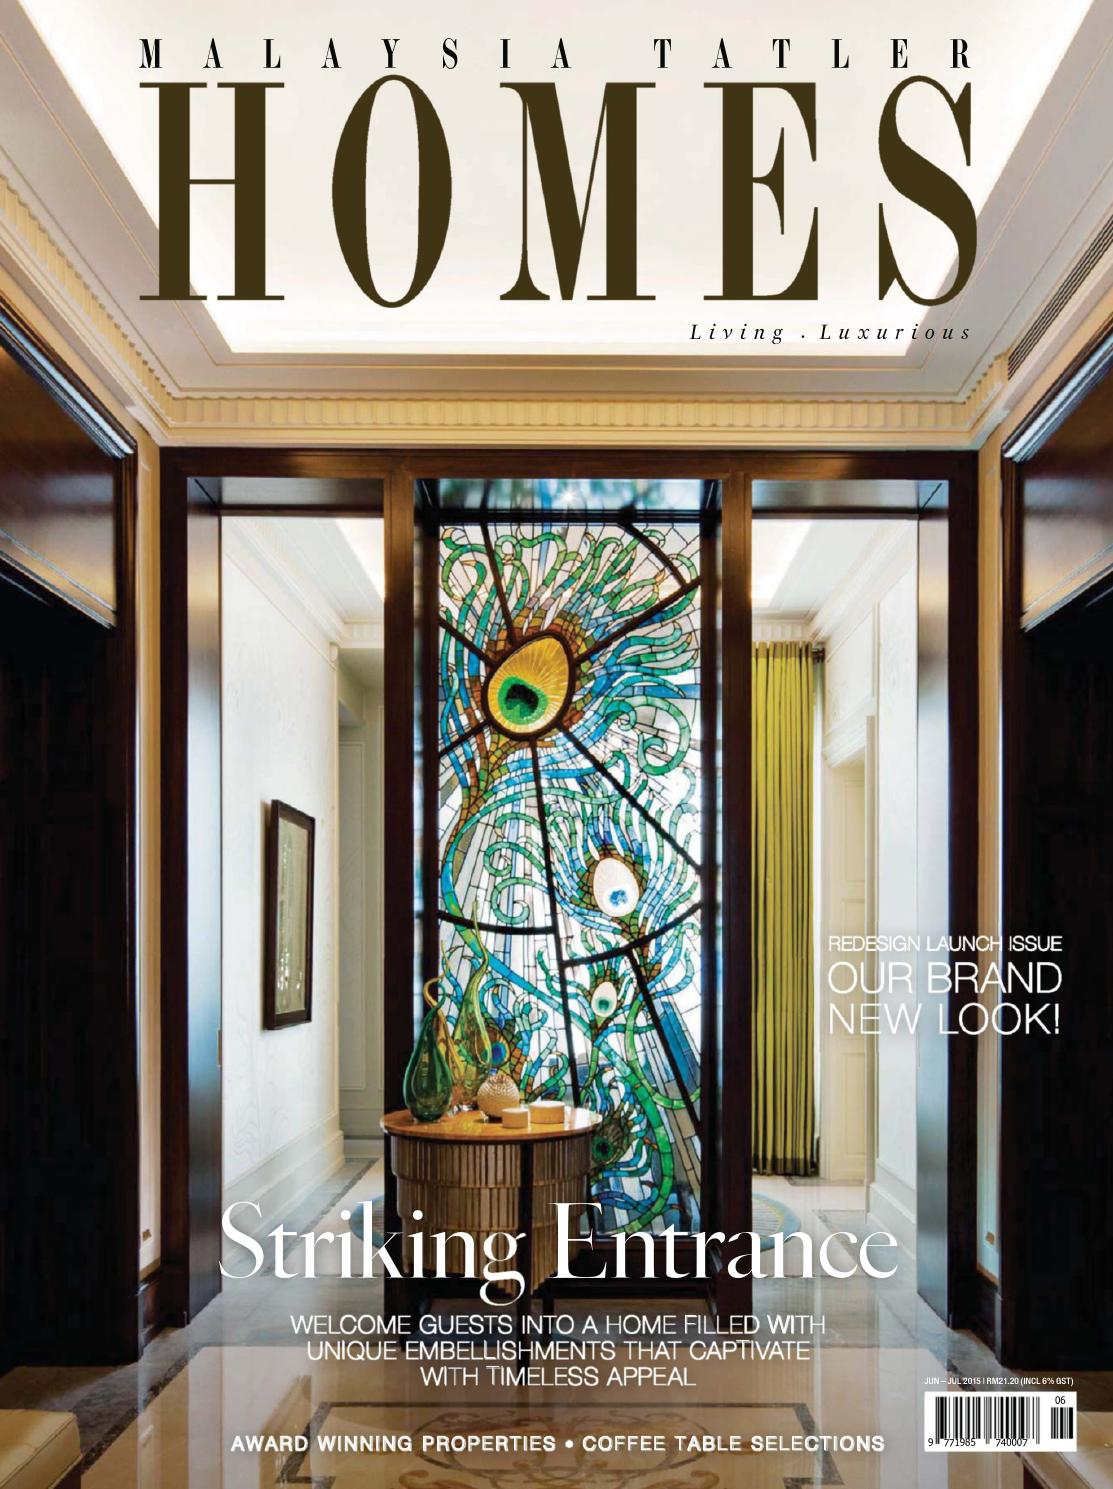 Wondrous Arje5Umalaysia Tatler Homes June July 2015 By Hoosrweam Issuu Gmtry Best Dining Table And Chair Ideas Images Gmtryco